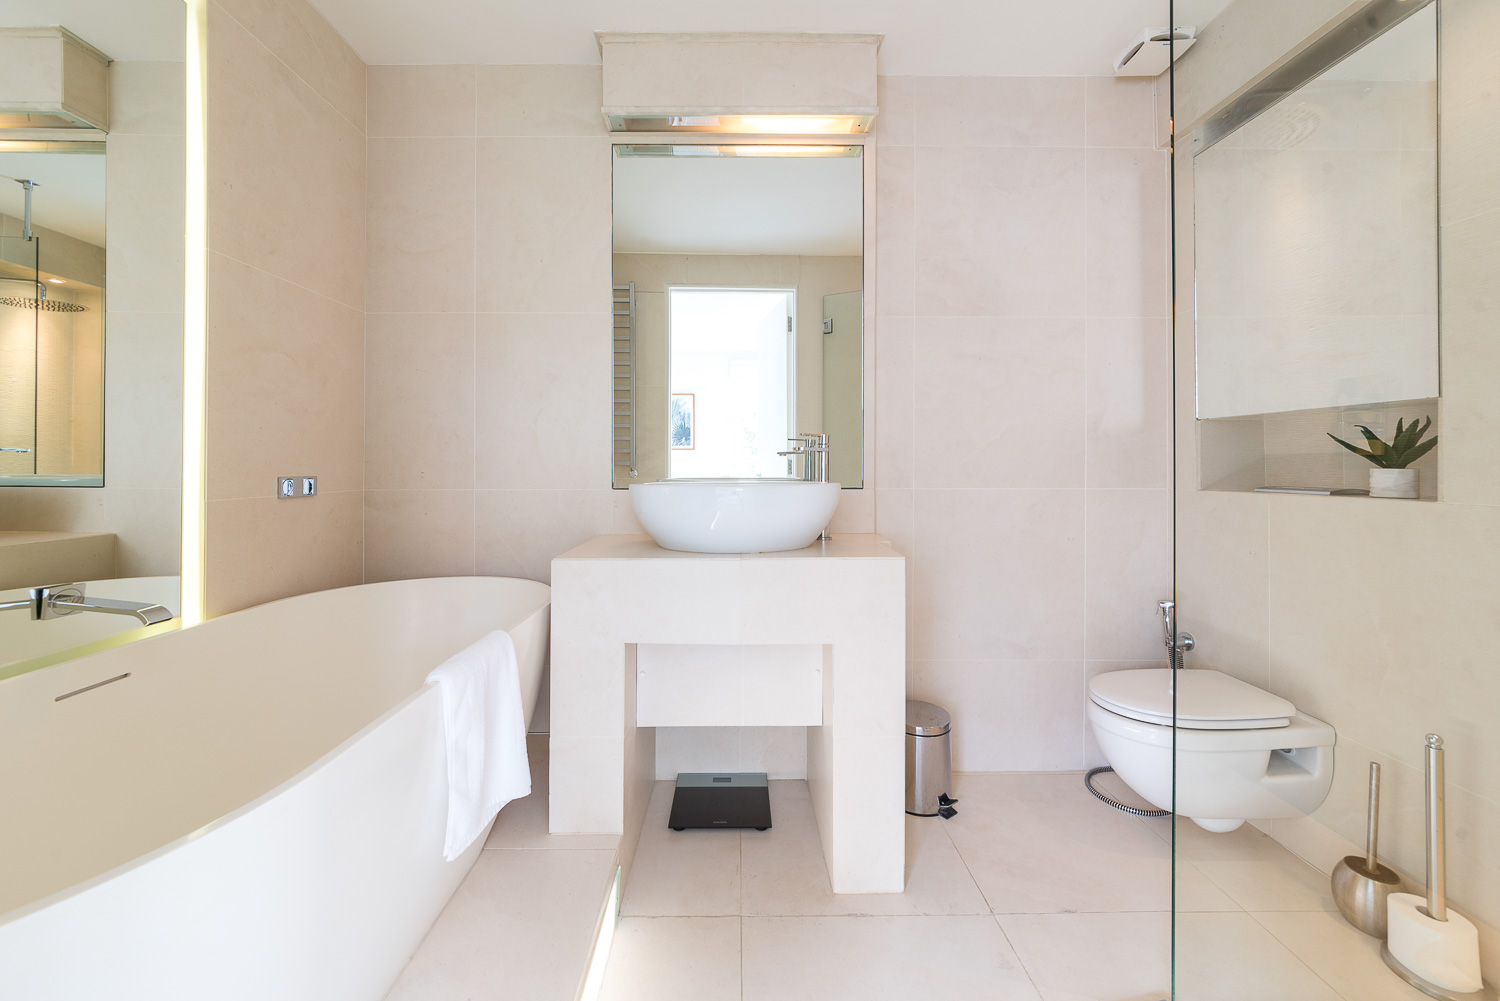 Lovelydays luxury service apartment rental - London - Fitzrovia - Foley Street II - Lovelysuite - 2 bedrooms - 2 bathrooms - Beautiful bathtub - 1095caf0b69a - Lovelydays